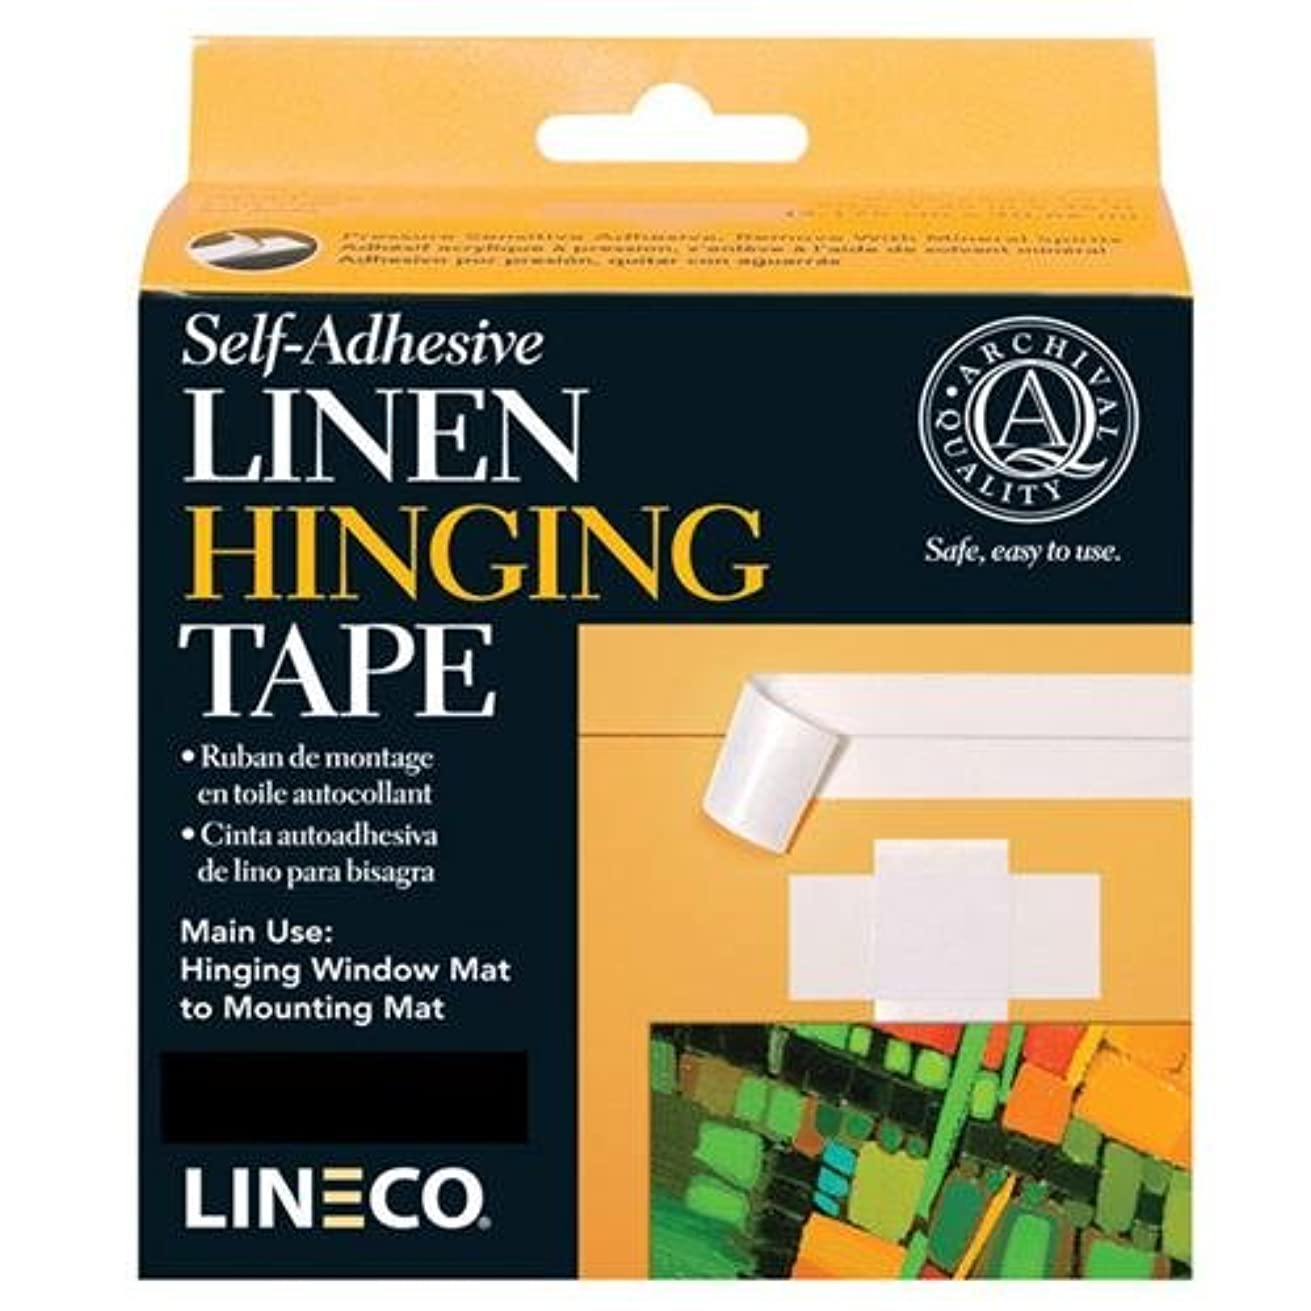 Lineco Linen Self-Adhesive Archival Hinge Tape Black 1.25'' x 150' for Framing, Matting, Bookbinding, Bookmaking, Arts, Crafts and Projects